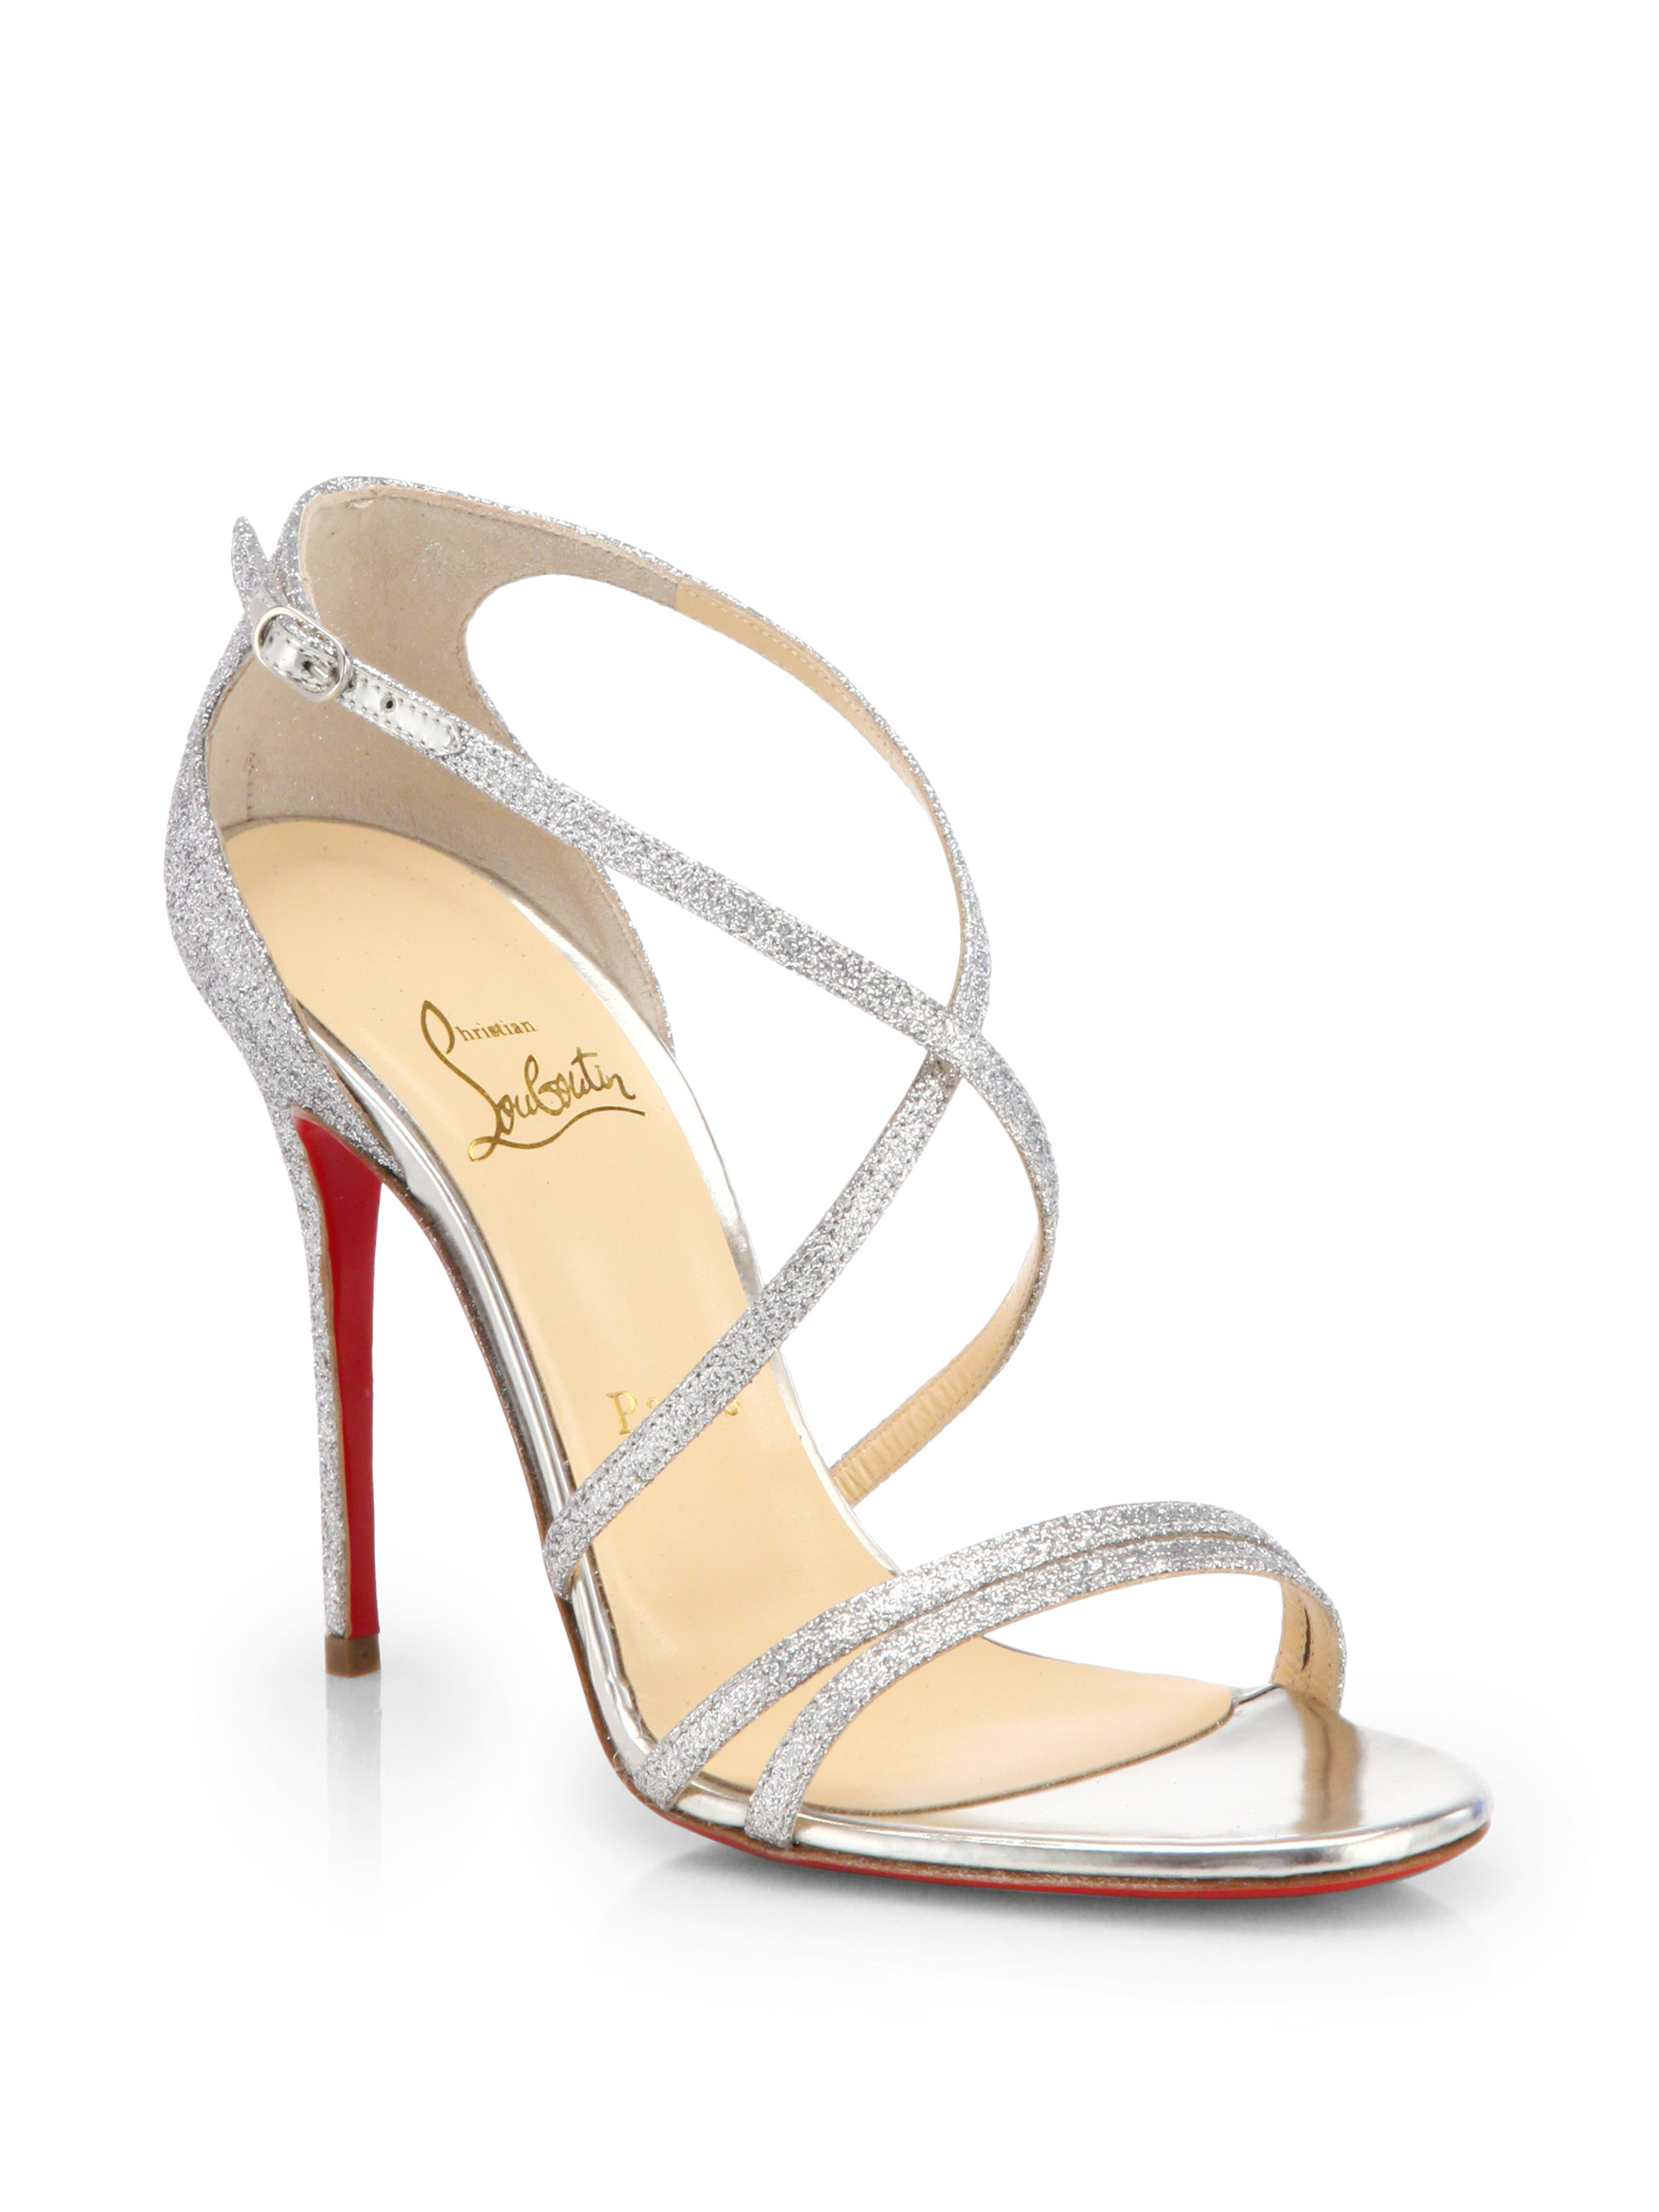 Price Dust Sandals Silver Louboutin 31638 Low 9236f Im7gyf6Ybv